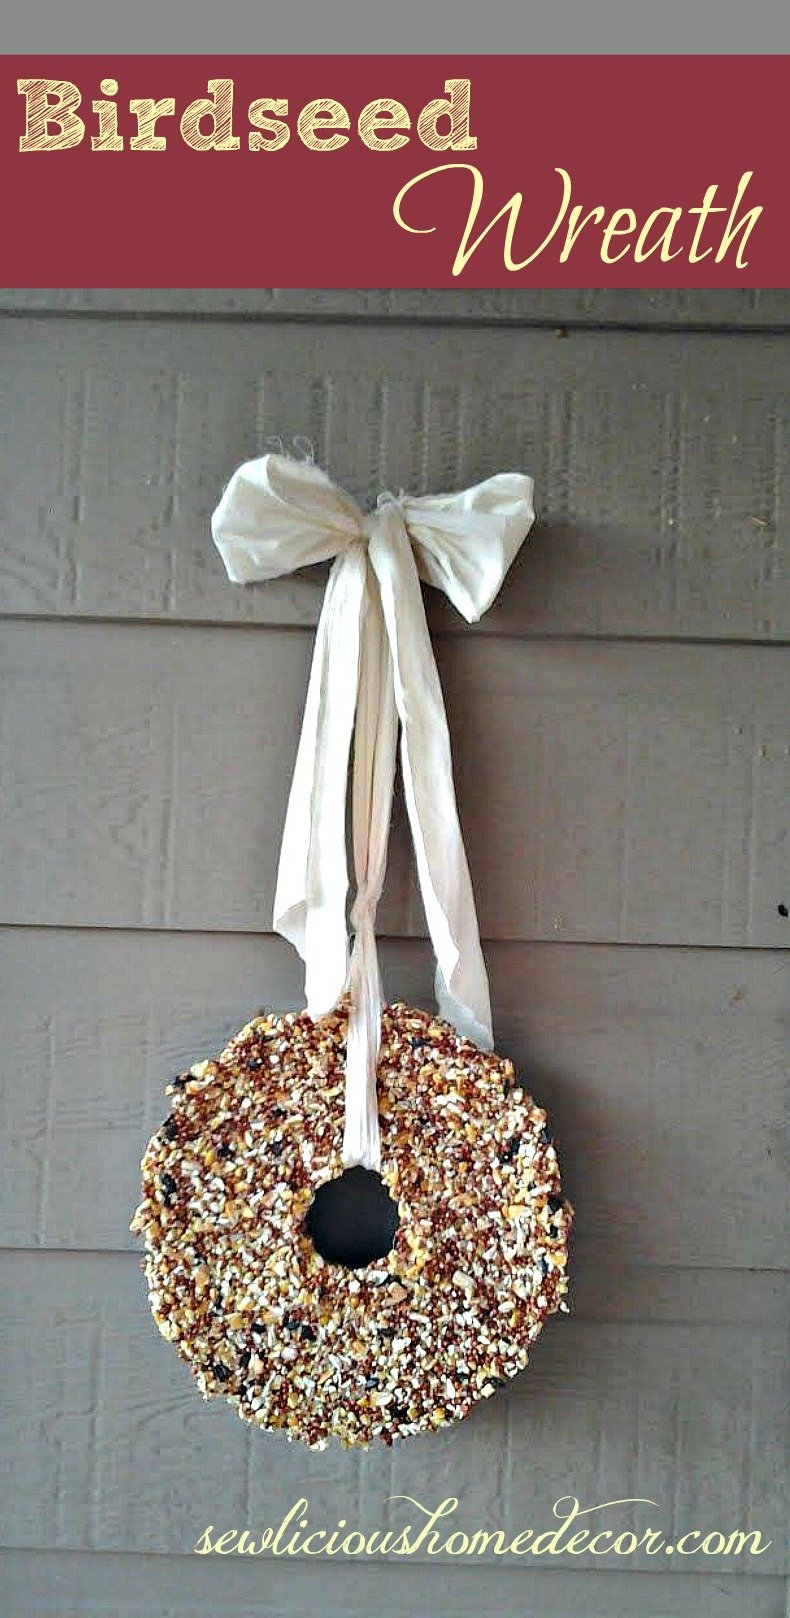 Birdseed Wreath Recipe